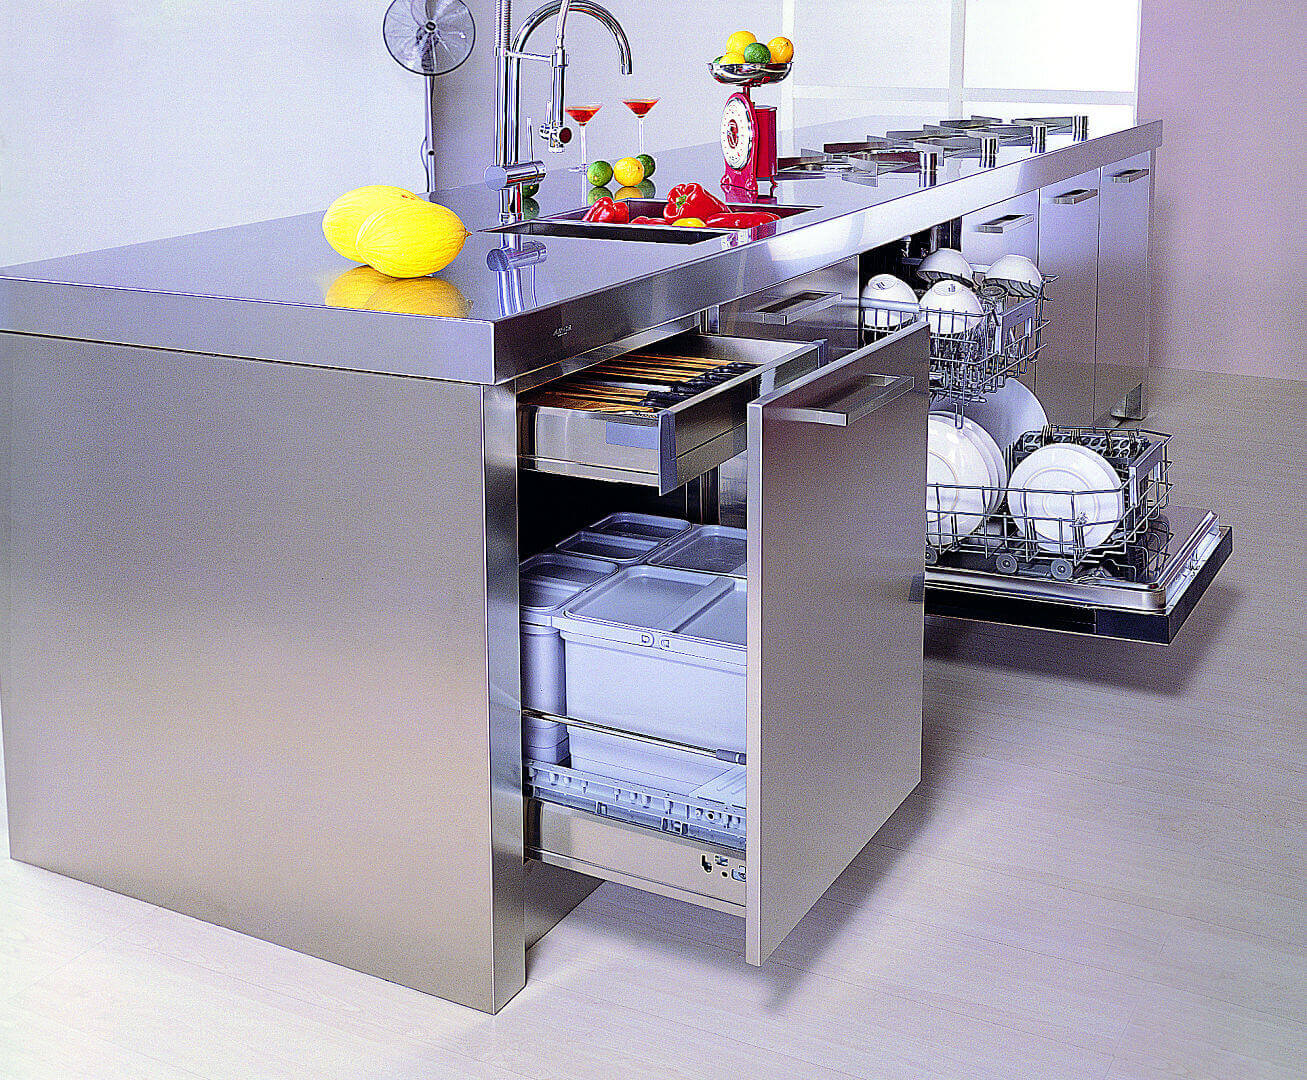 Arca Cucine Italy - Kitchen maid in Stainless Steel and Glass - Opera - Extraction basket Total